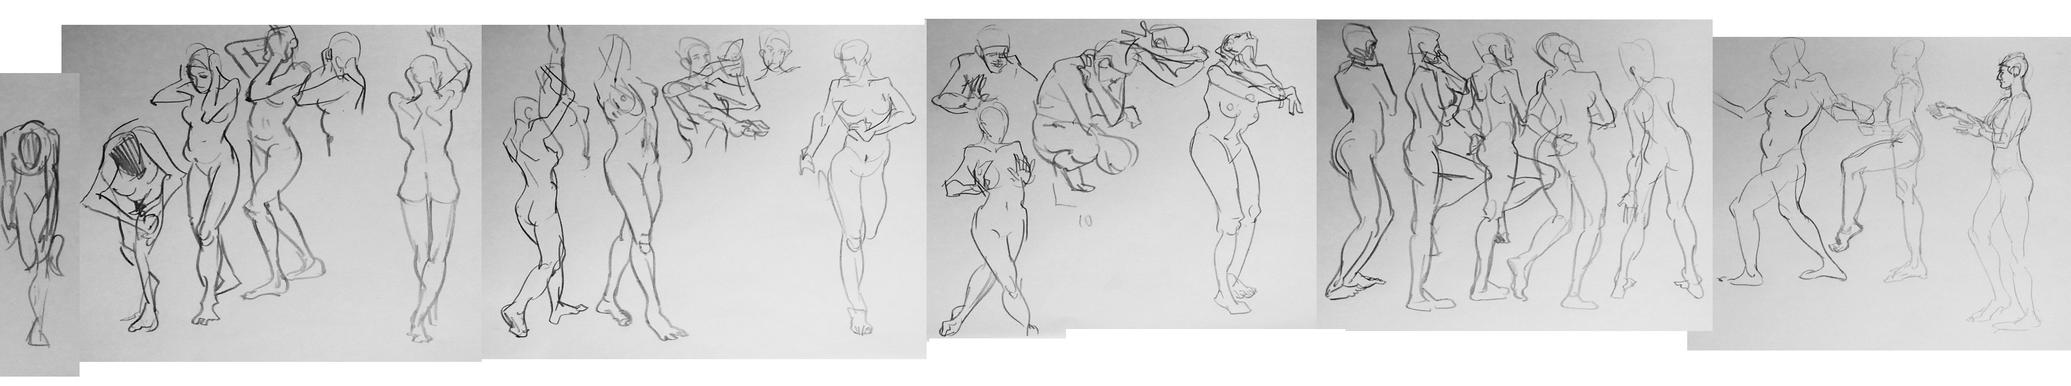 Croquis de Vie2 moving by sweetmoon